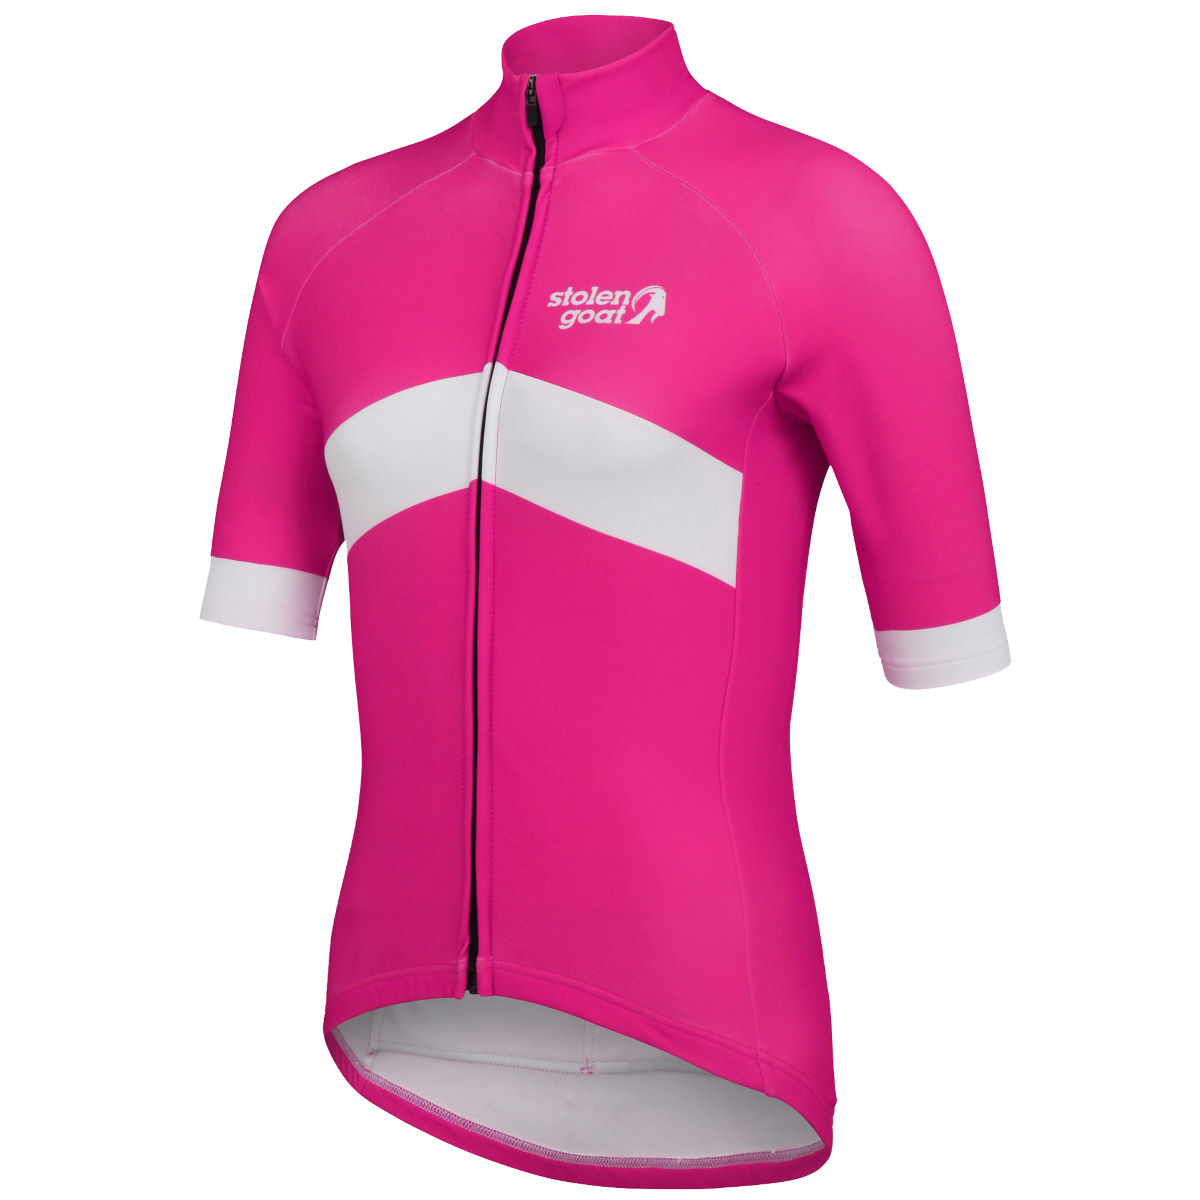 Maillot Femme Stolen Goat Orkaan Everyday (manches courtes) - XL